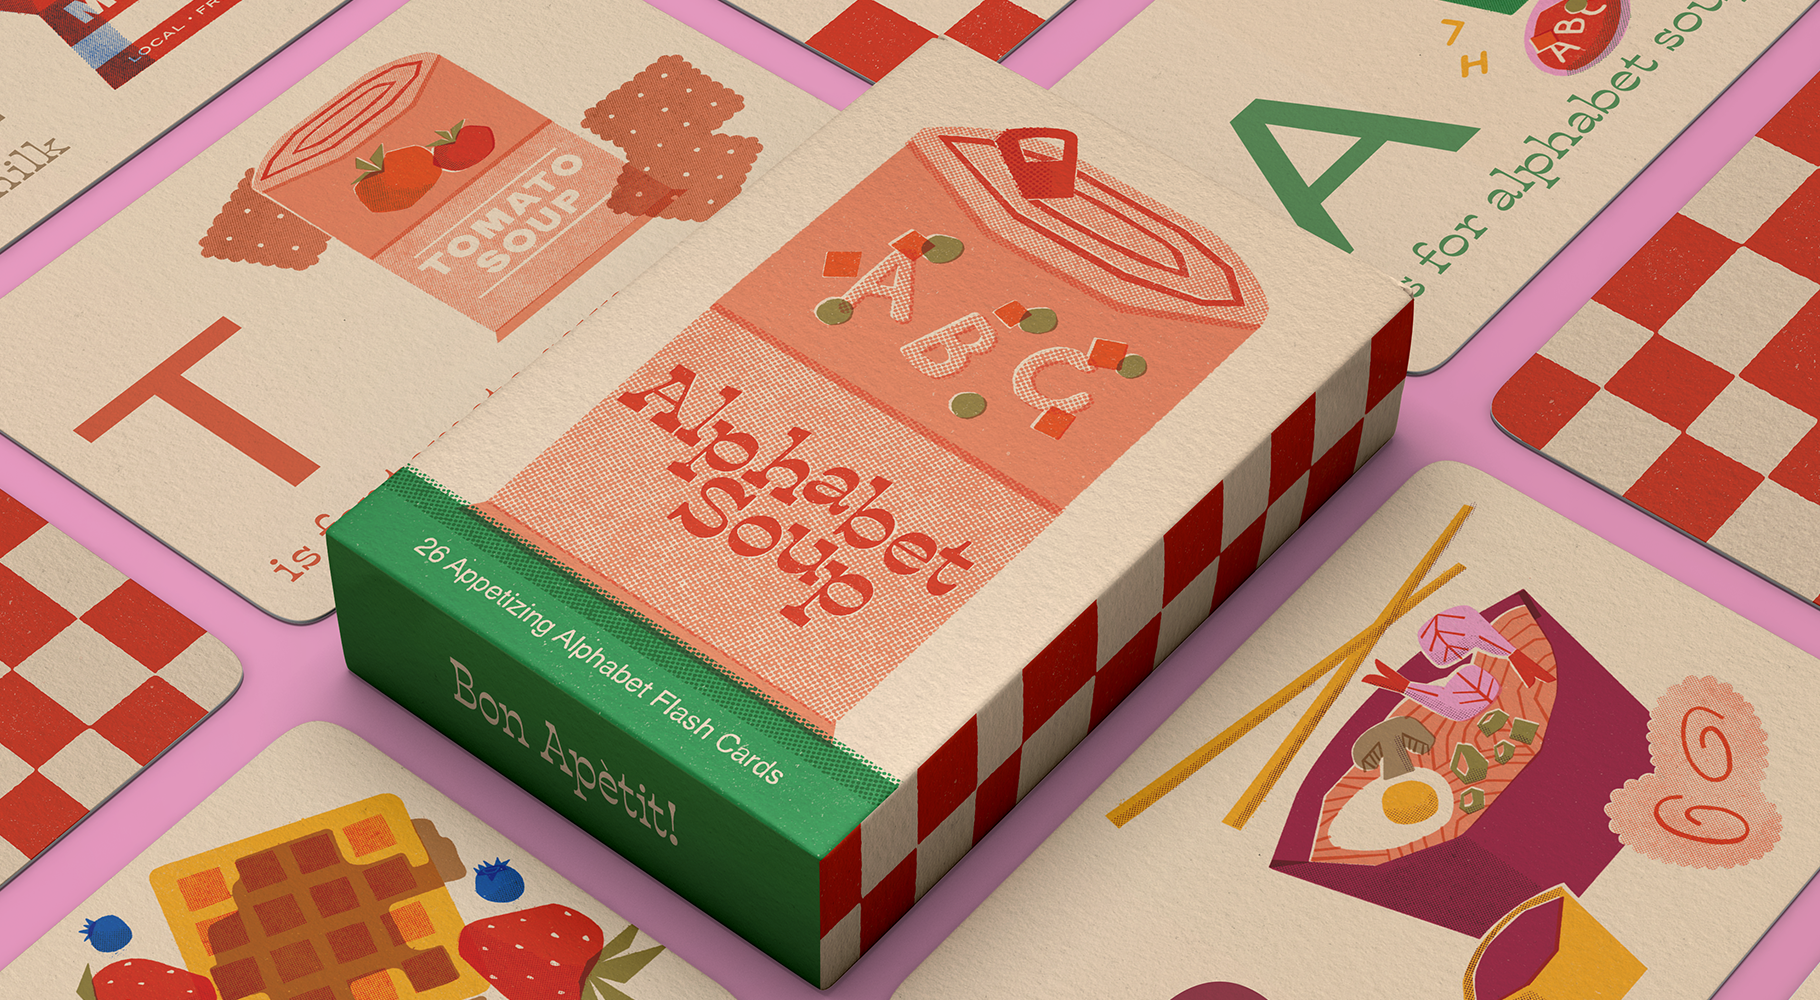 An image of a flashcard box for Alphabet Soup with a spread of cards. featuring R is for Ramen, T is for Tomato Soup, W is for Waffles and A is for Alphabet Soup.